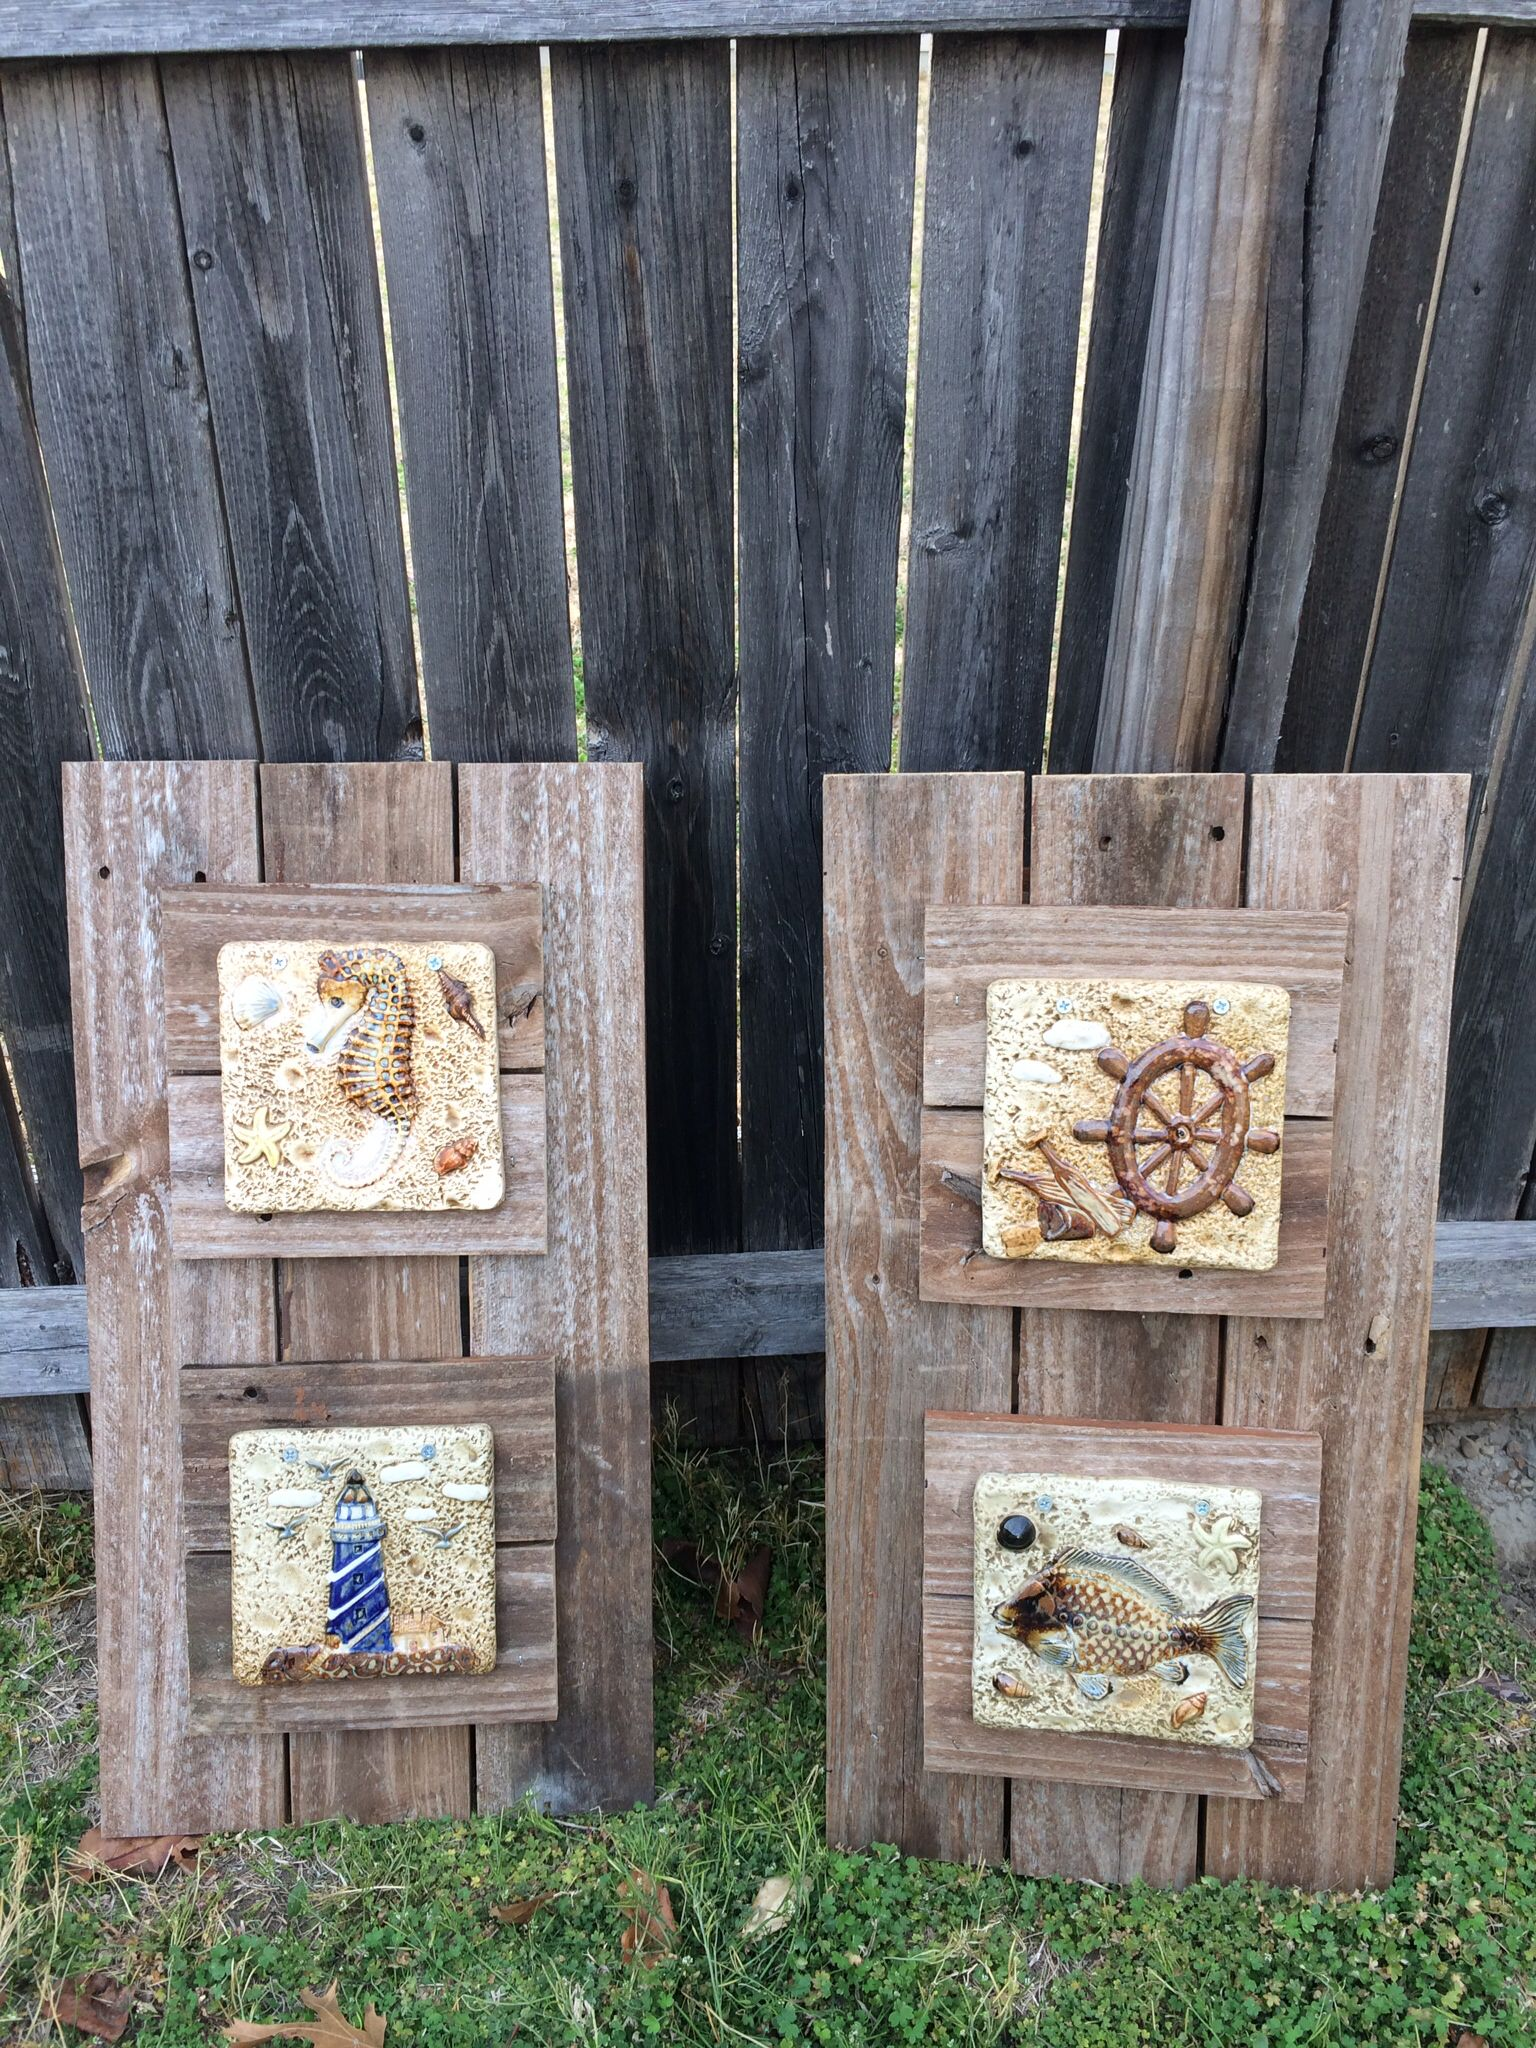 Diy nautical patio decor made out old fence post decorative tile diy nautical patio decor made out old fence post decorative tile baanklon Image collections